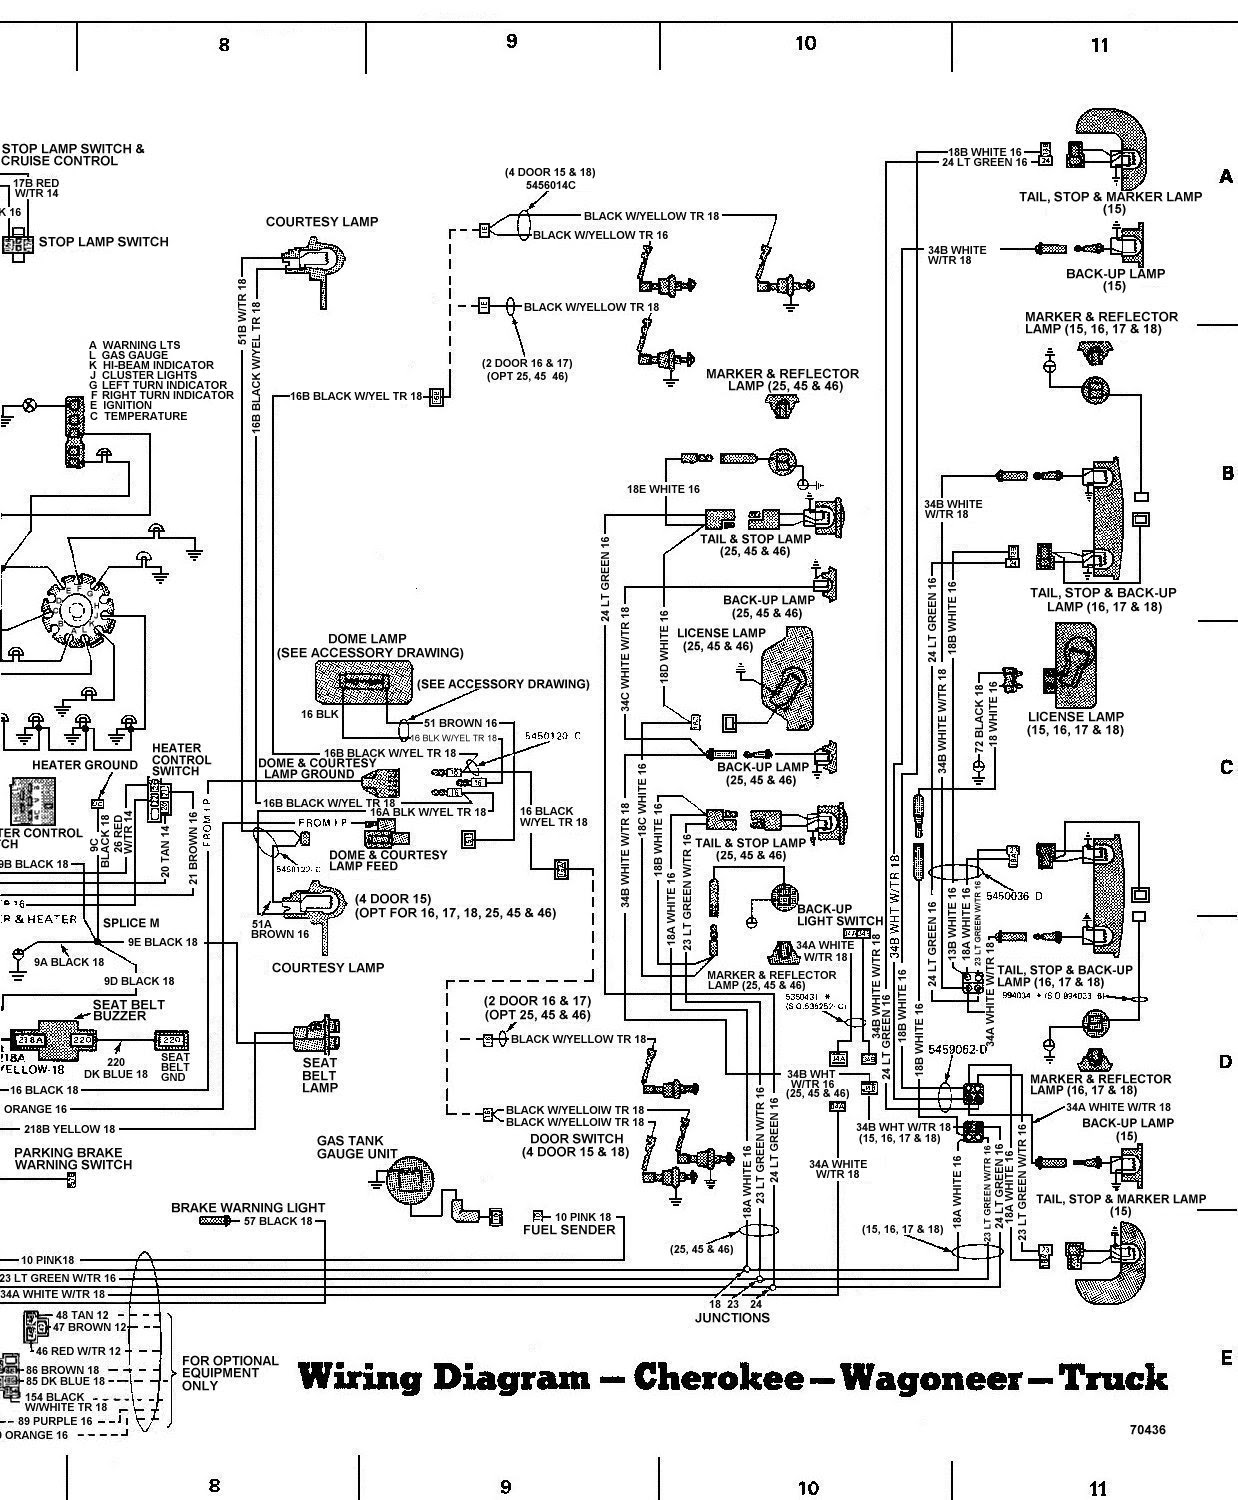 2004 Jeep Grand Cherokee Trailer Wiring Diagram from lh5.googleusercontent.com